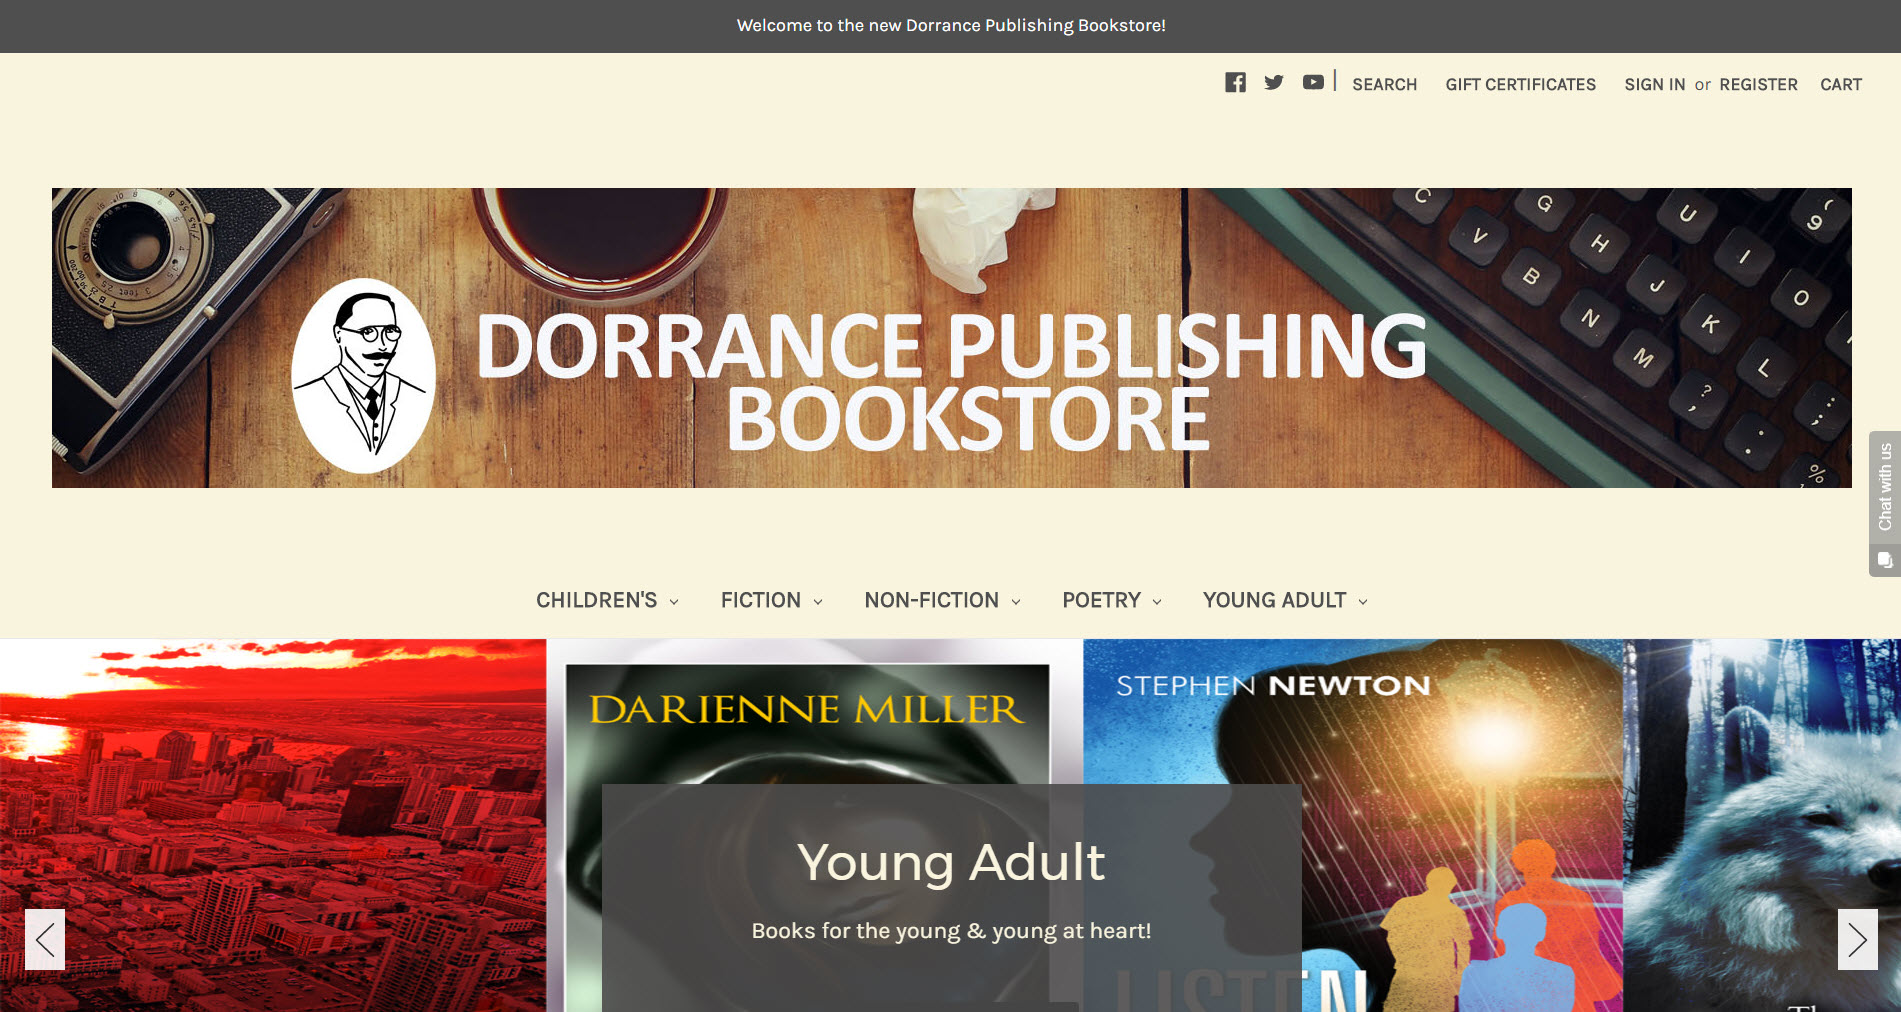 Screenshot of the Dorrance Publishing Bookstore homepage.